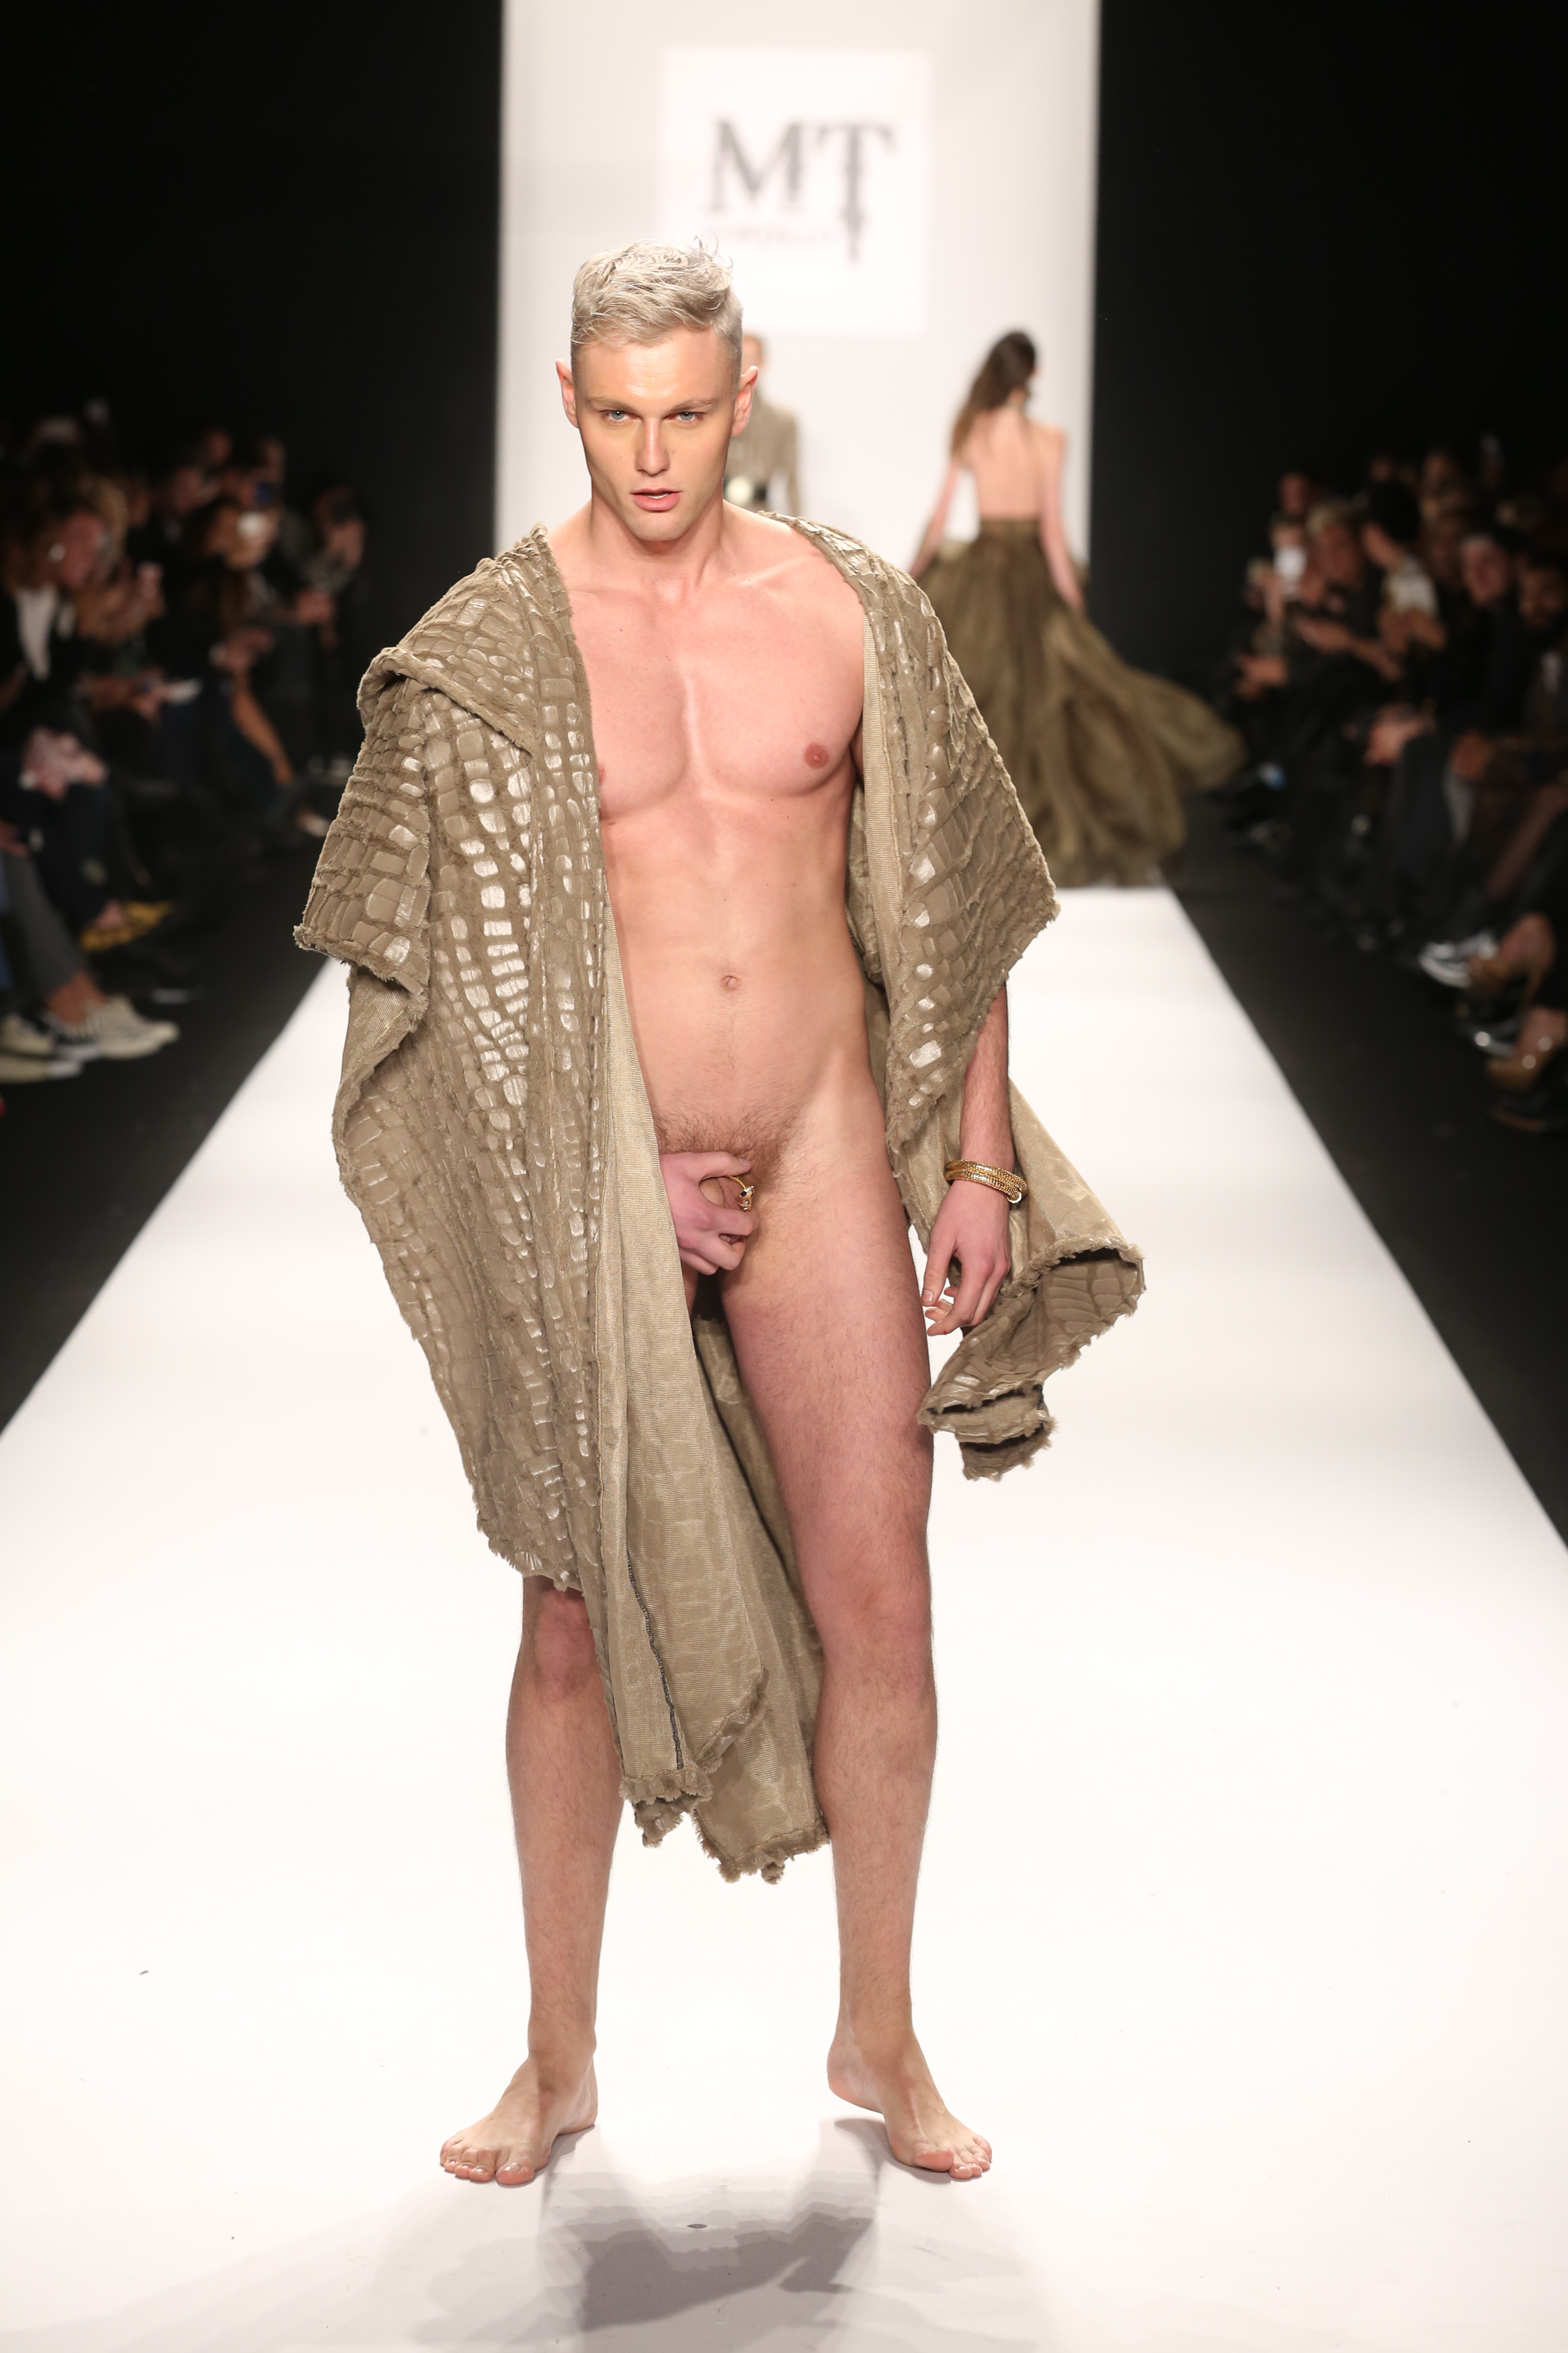 Nude models fashion show